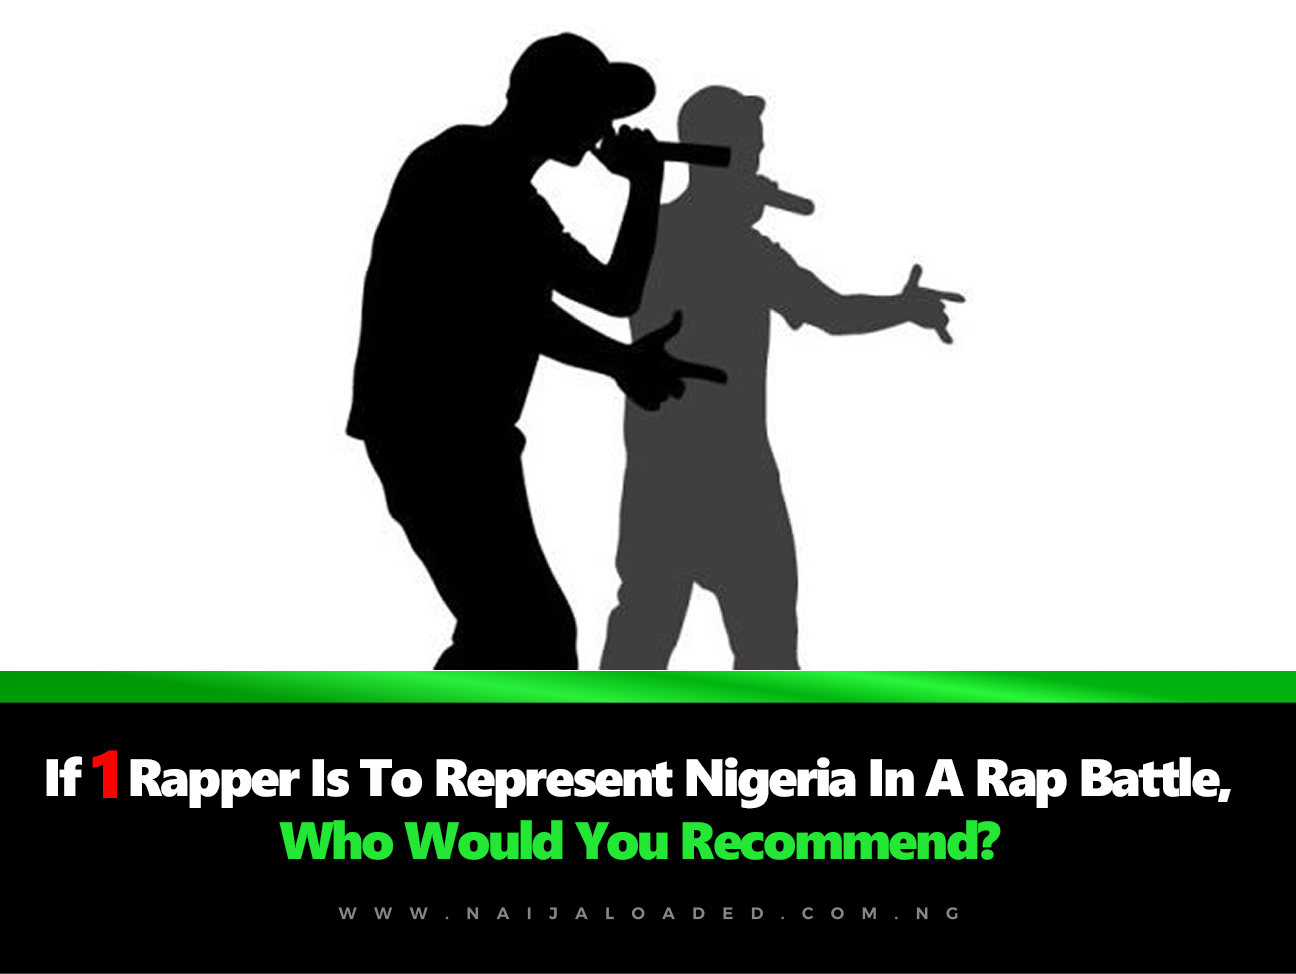 Who%2BIs%2BThe%2BKing%2BOf%2BRap%2BIn%2BNigeria If 1 Rapper Is To Represent Nigeria In A Rap Battle, Who Would You Recommend?